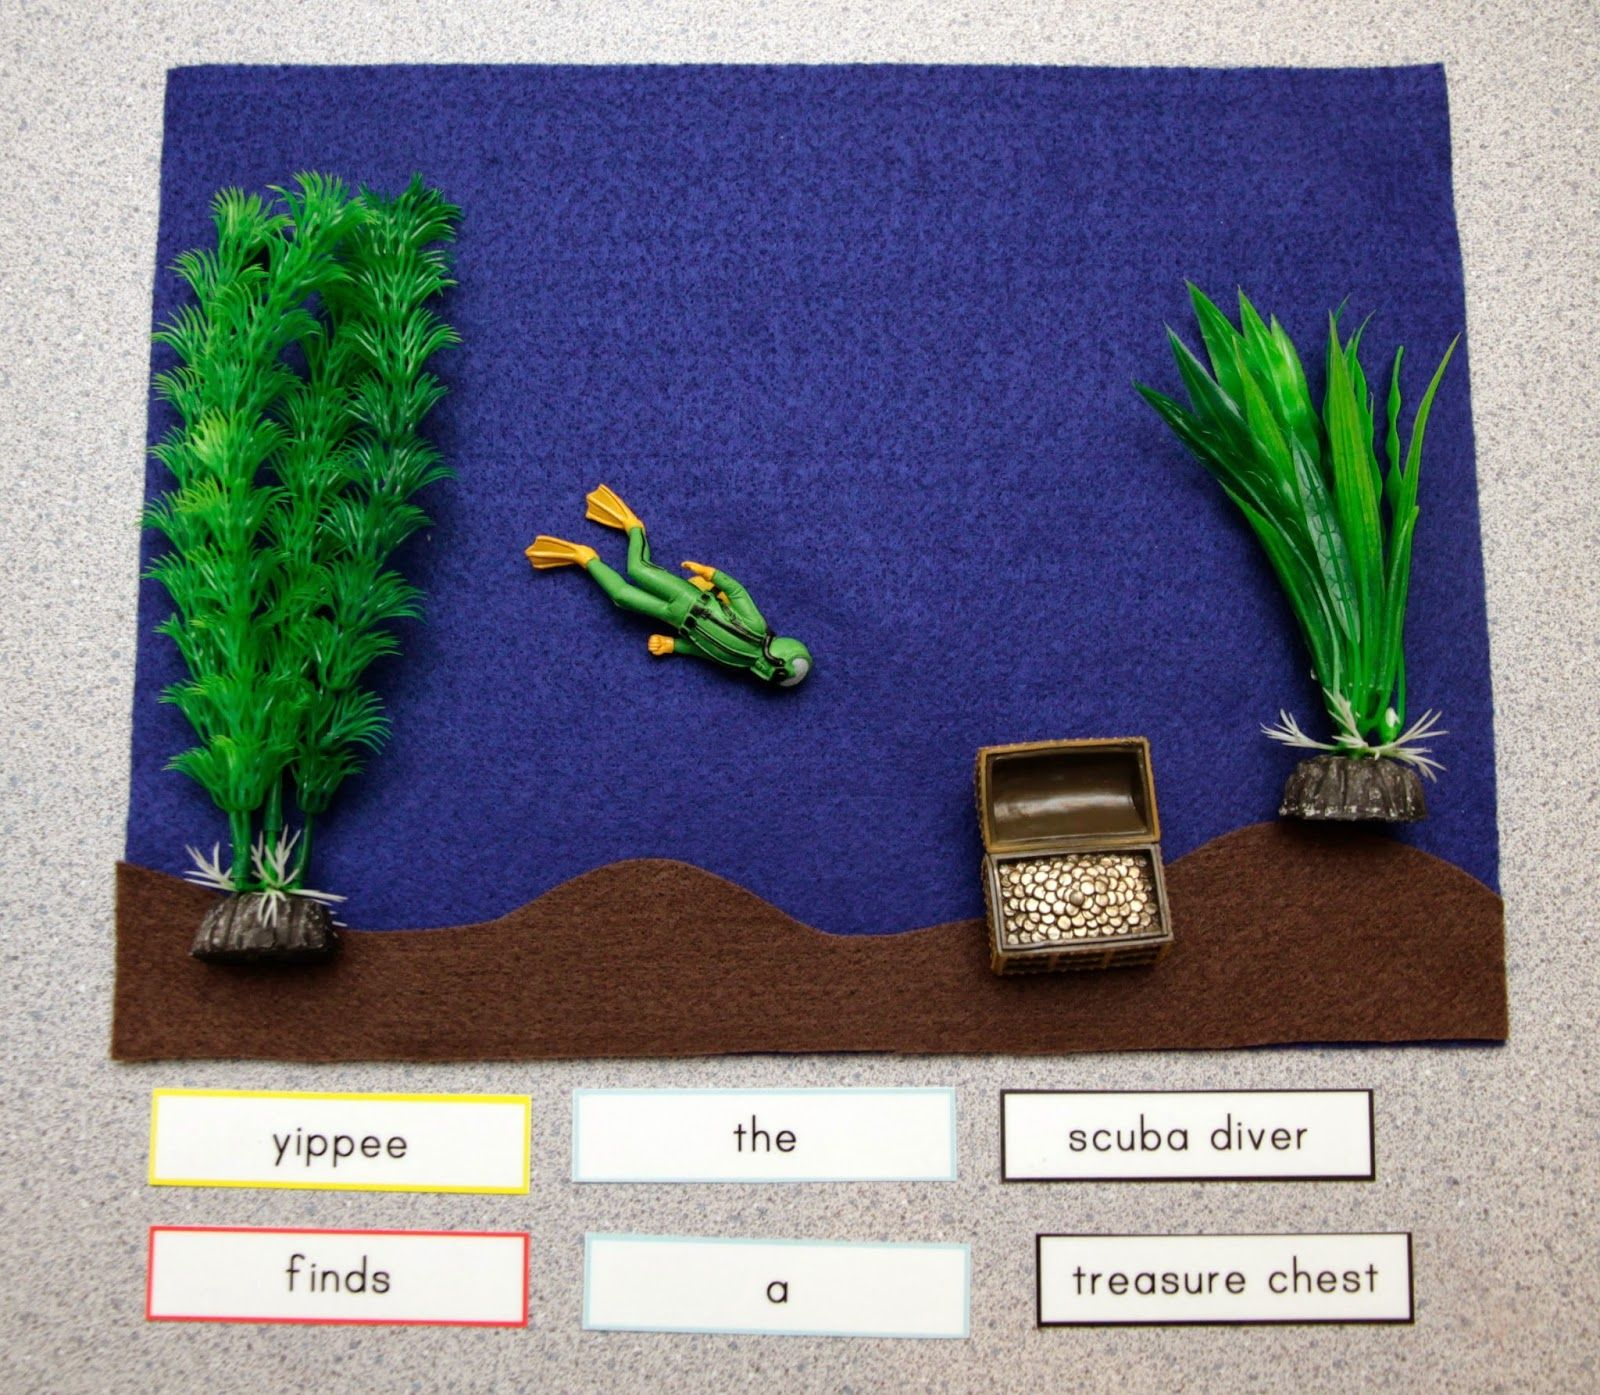 Grace and Green Pastures: Mini Grammar Environments -- using toobs to create small environments with labels. Awesome idea!